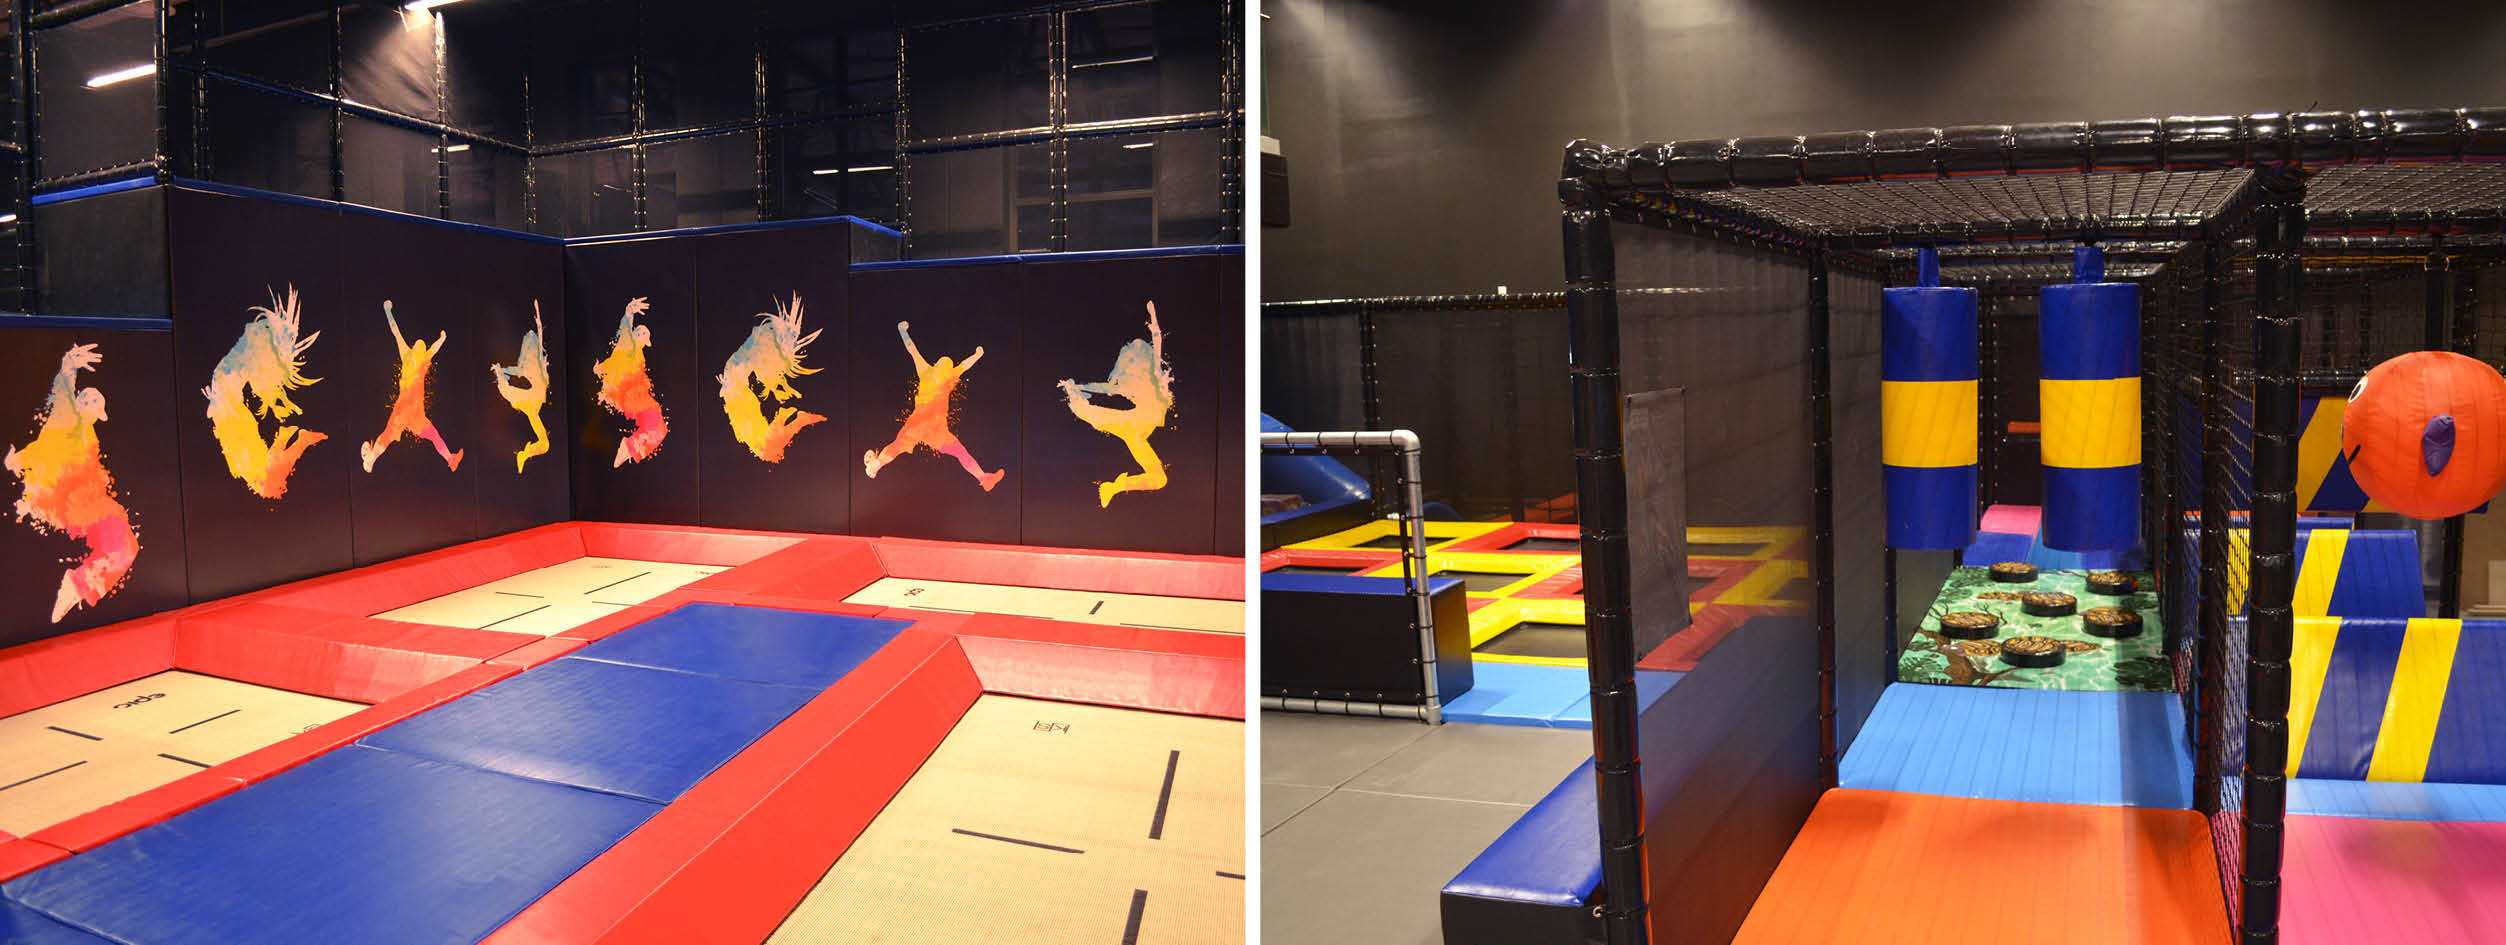 Trampoline park EPIC with Kids Ninja Course